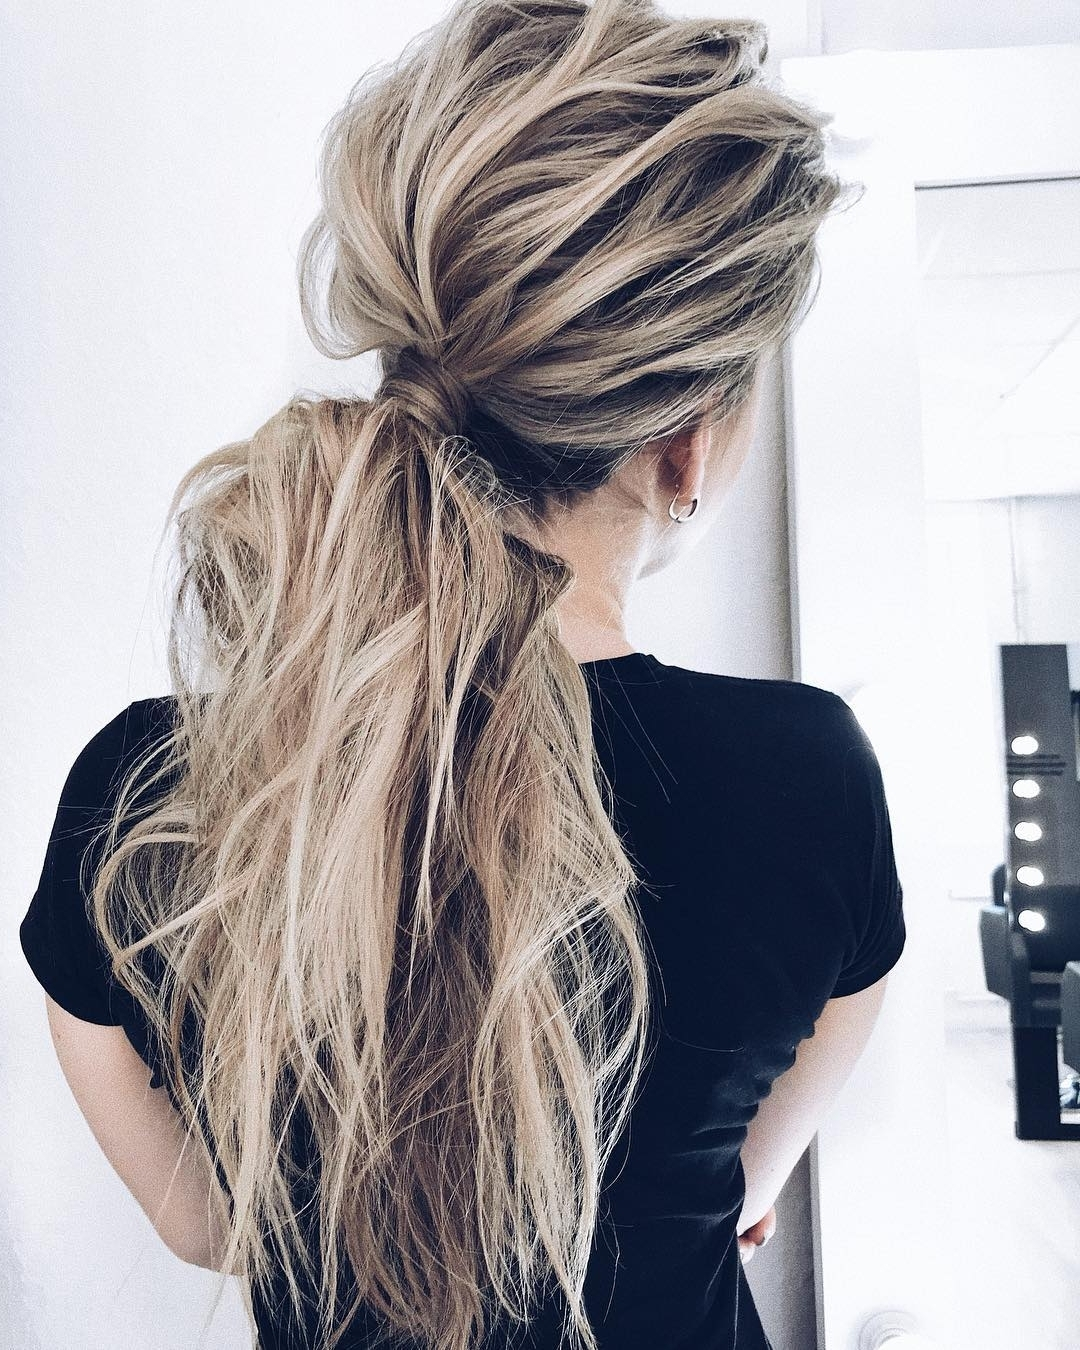 Most Current Intricate And Adorable French Braid Ponytail Hairstyles With Regard To 10 Creative Ponytail Hairstyles For Long Hair, Summer Hairstyle (View 12 of 20)